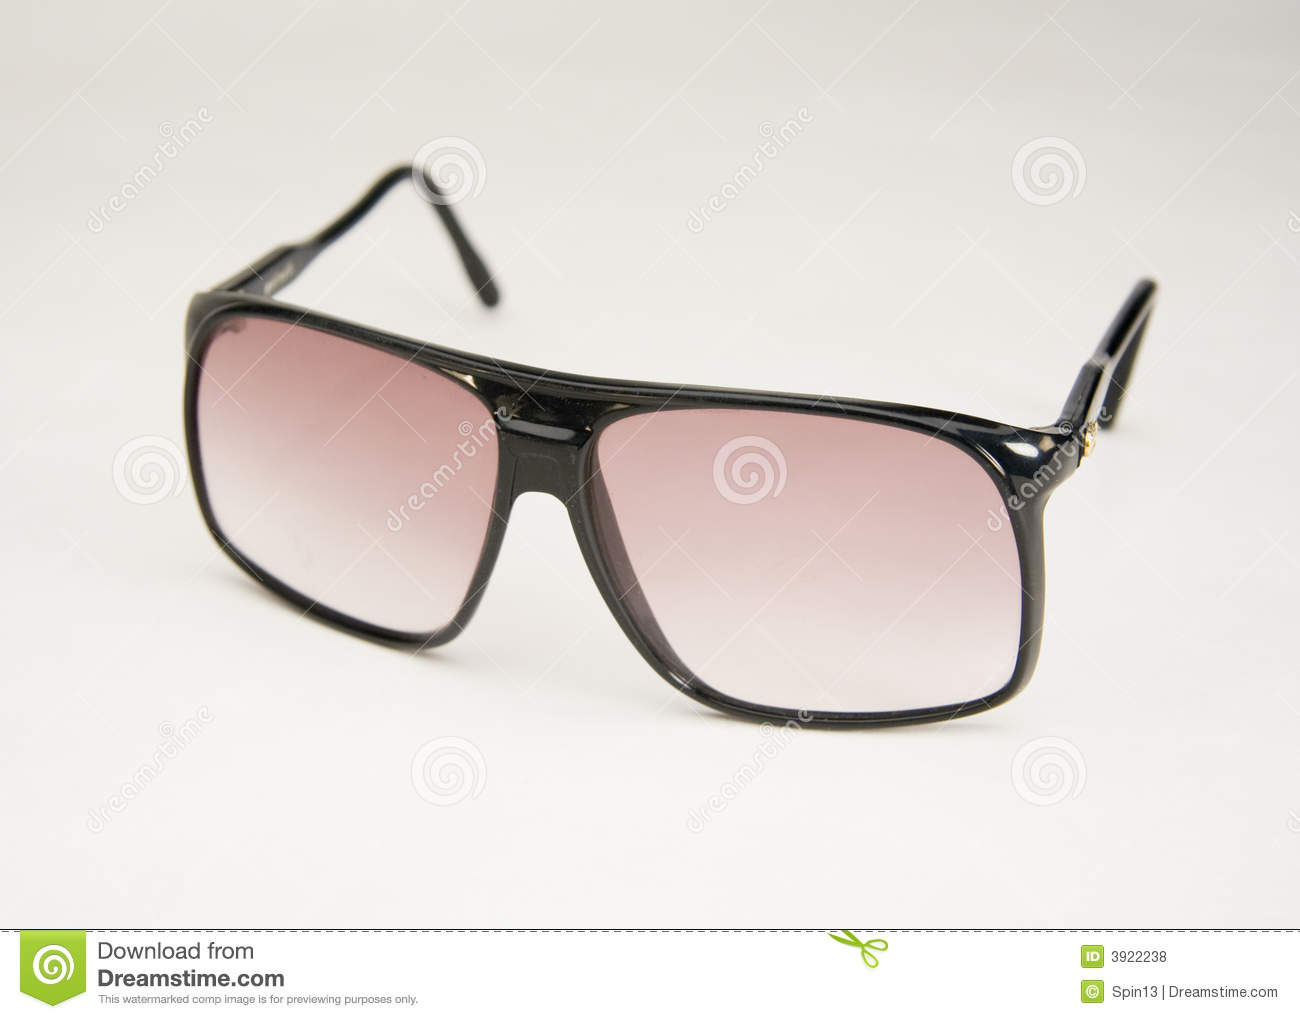 5fed4f9a3f Vintage 70 s Sunglasses stock photo. Image of style